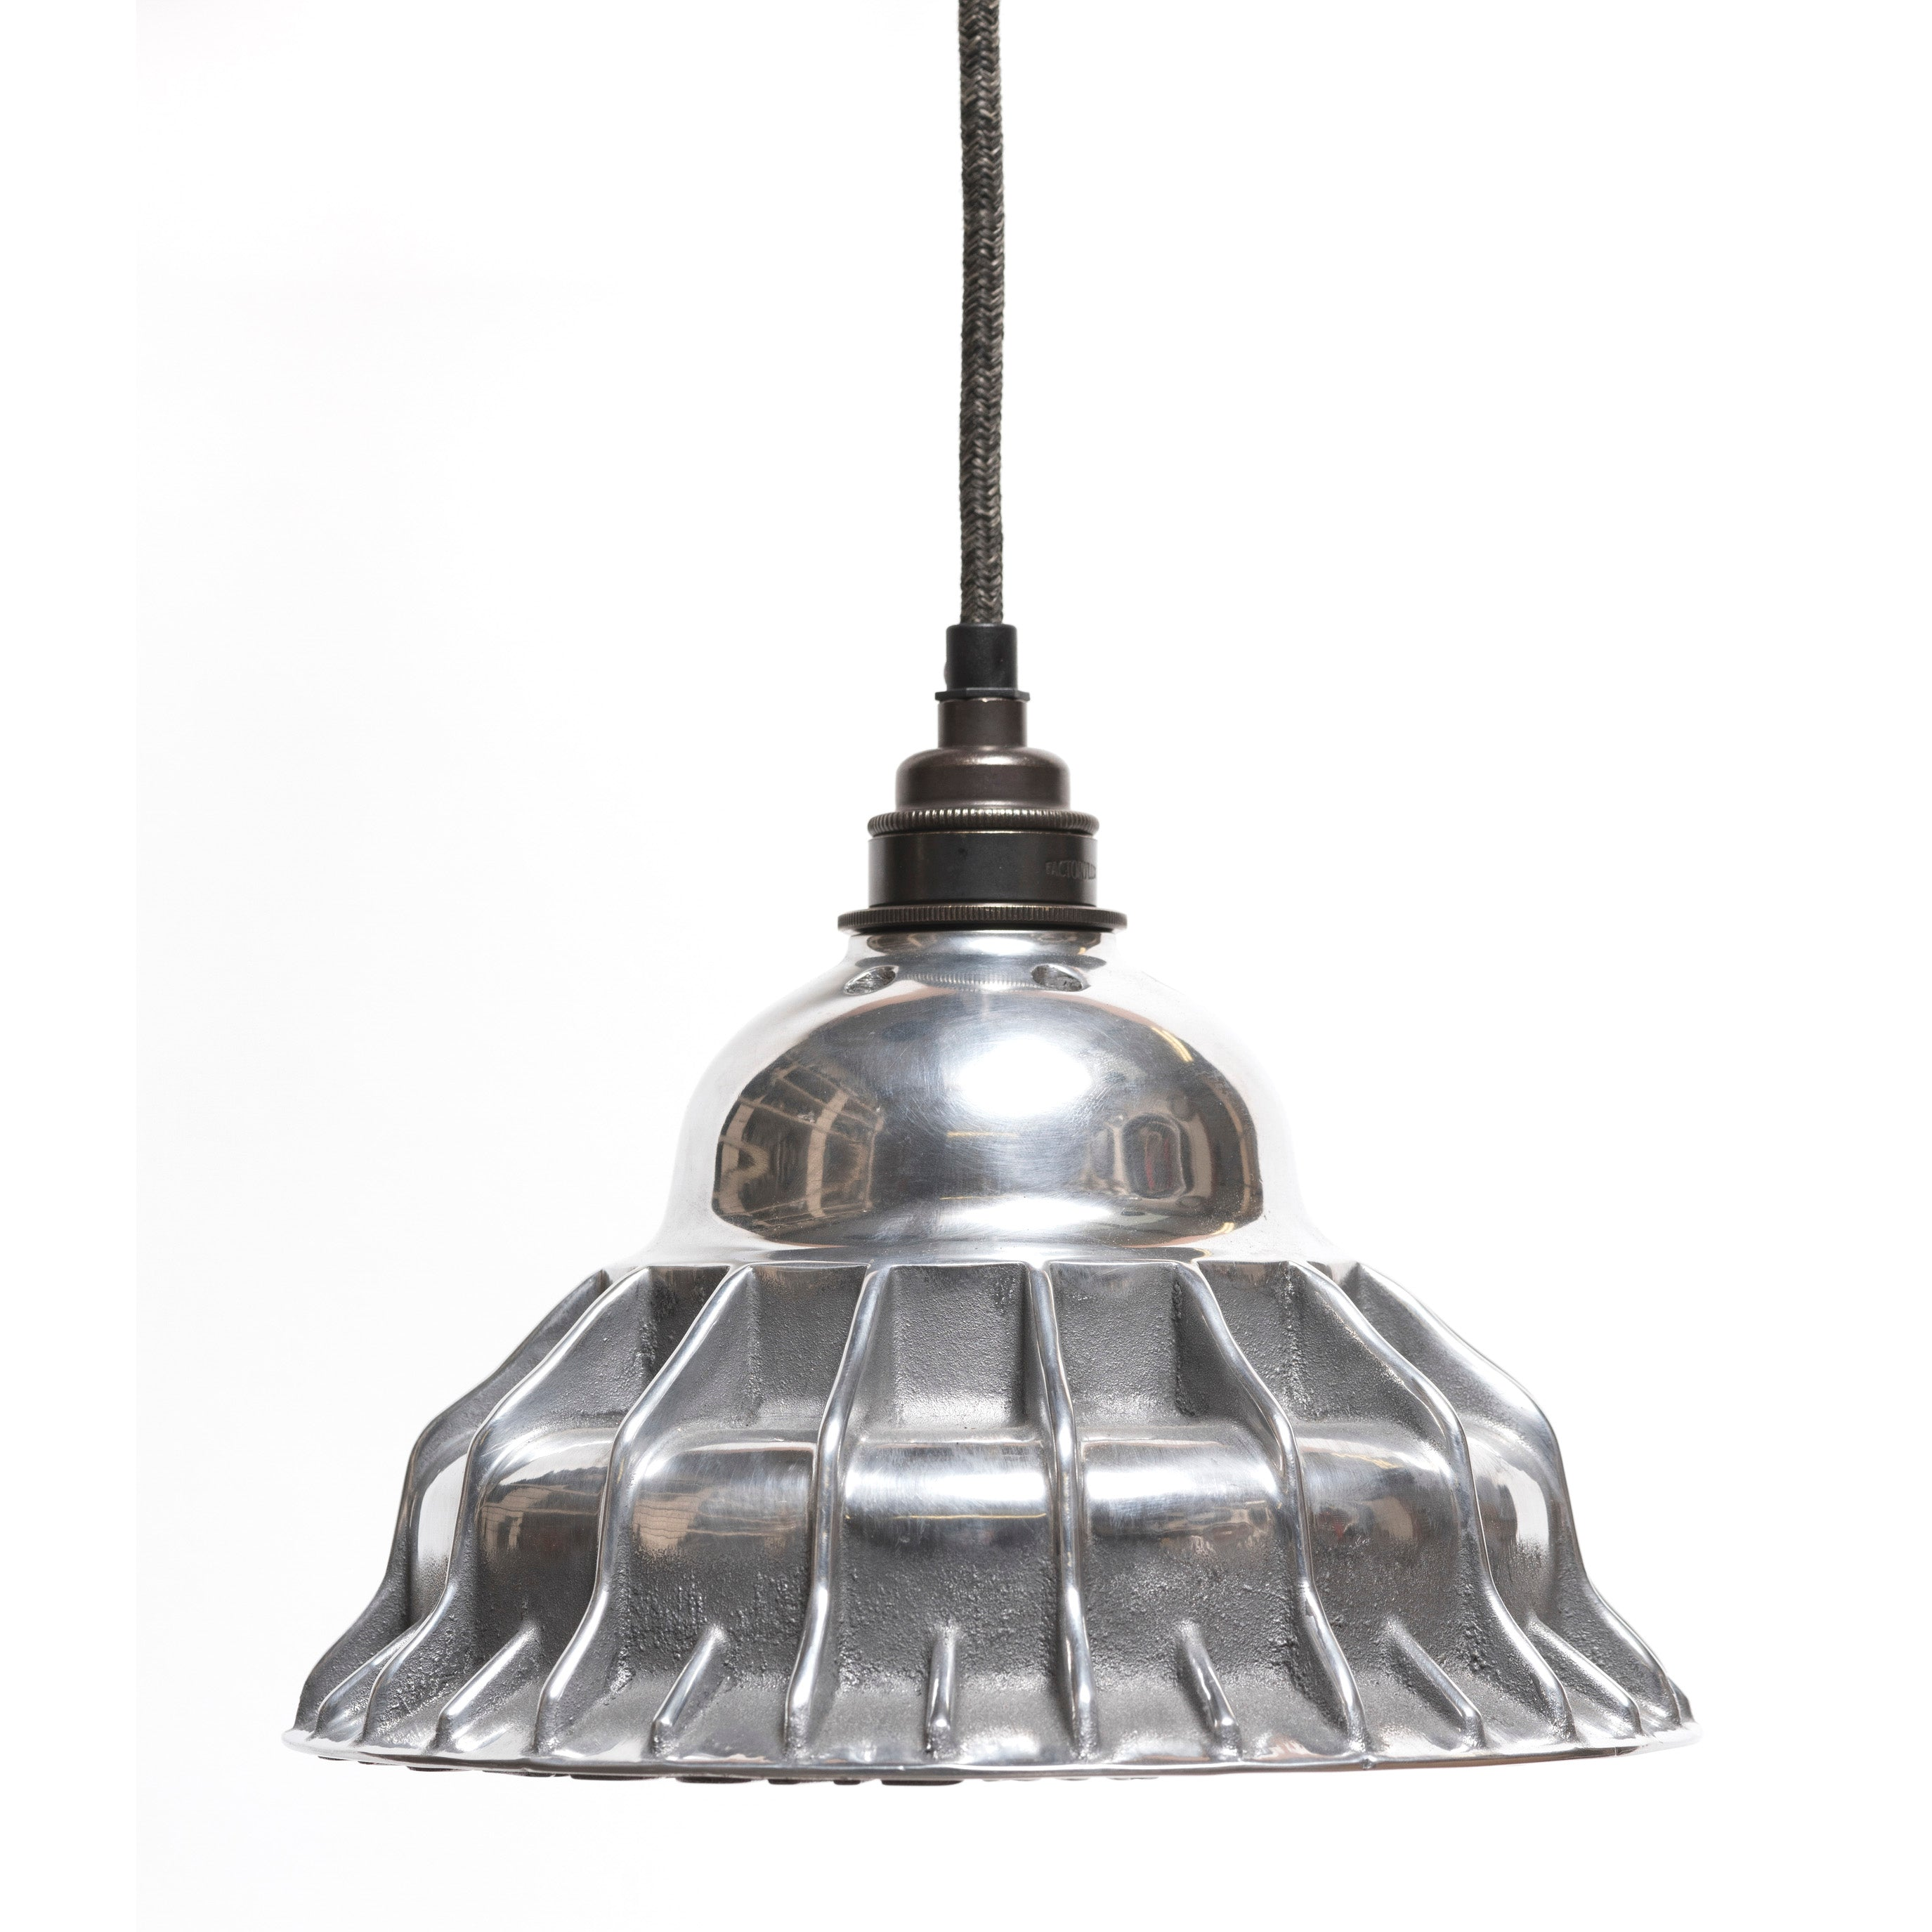 rexnamo wesco pendant style rexled fixture product base for warehouse bulb bwct prev sherbert pillvented